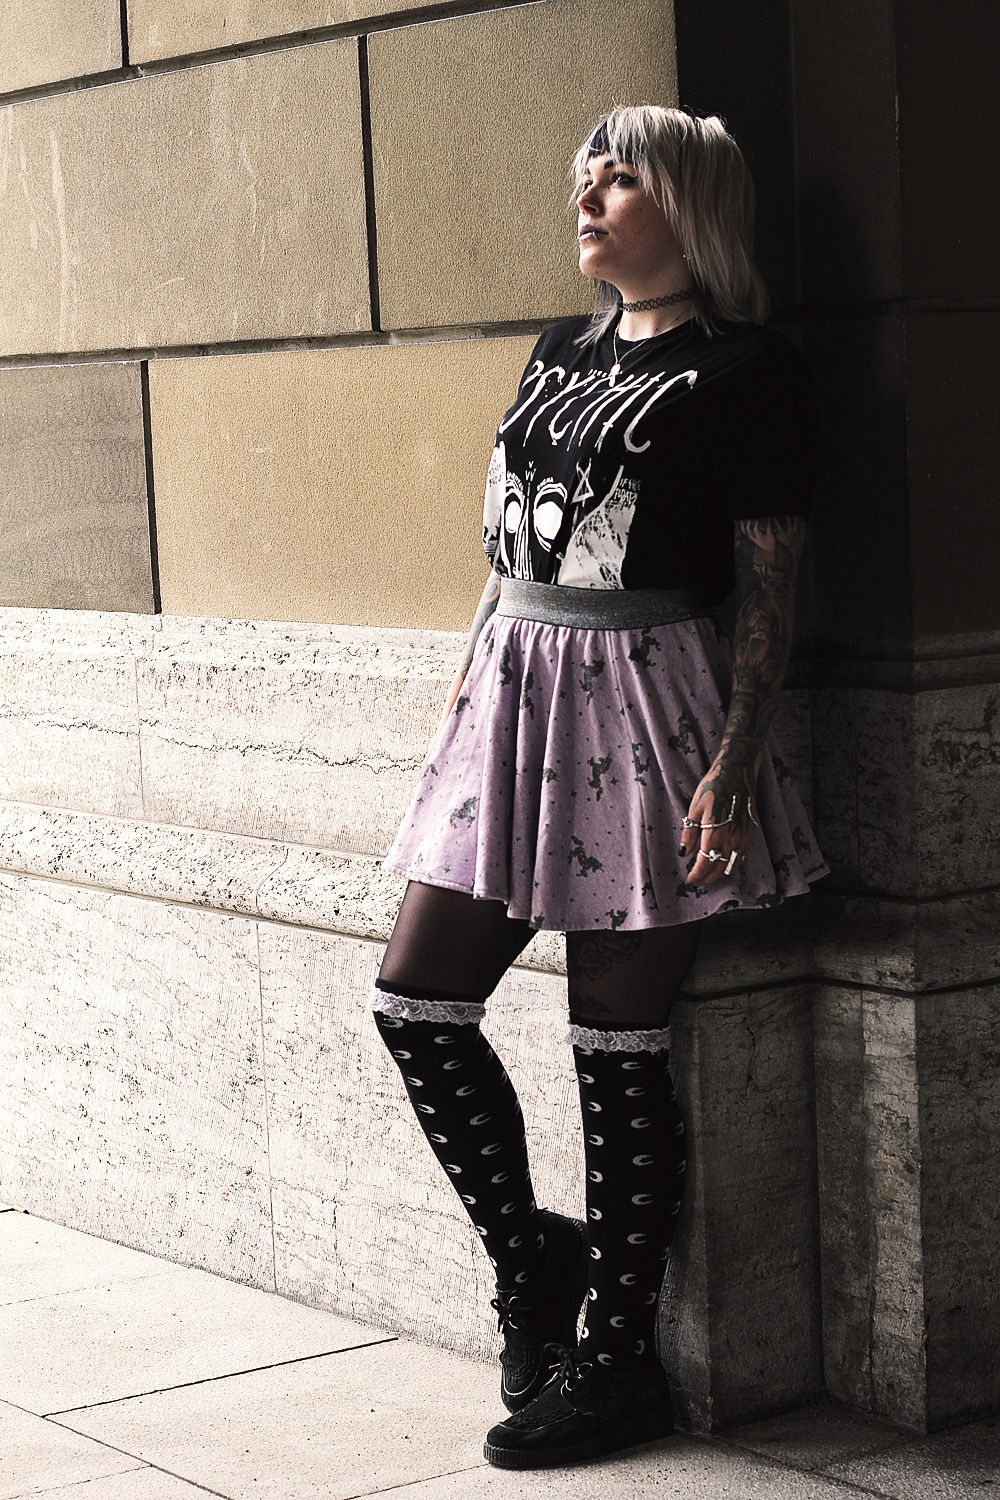 killstar, disturbia, aurora, overknees, einhorn, rock, sommer, psychic angst, creepers, lila, lavender, glitzer, alternative, alternative fashion, alternative girl, alternative mode, altgirl, berlin, berlin fashion, berlin fashion blogger, berlin mode, berlin streetstyle, blogger, fashion blogger, girls with piercings, girls with tattoos, grunge, grunge fashion, grunge mode, mode, Punk, punk fashion, punk mode, punkgirl, punkmädchen, scenehair, snakebites, split hair, splithair, tattoomädchen, tattoomodel